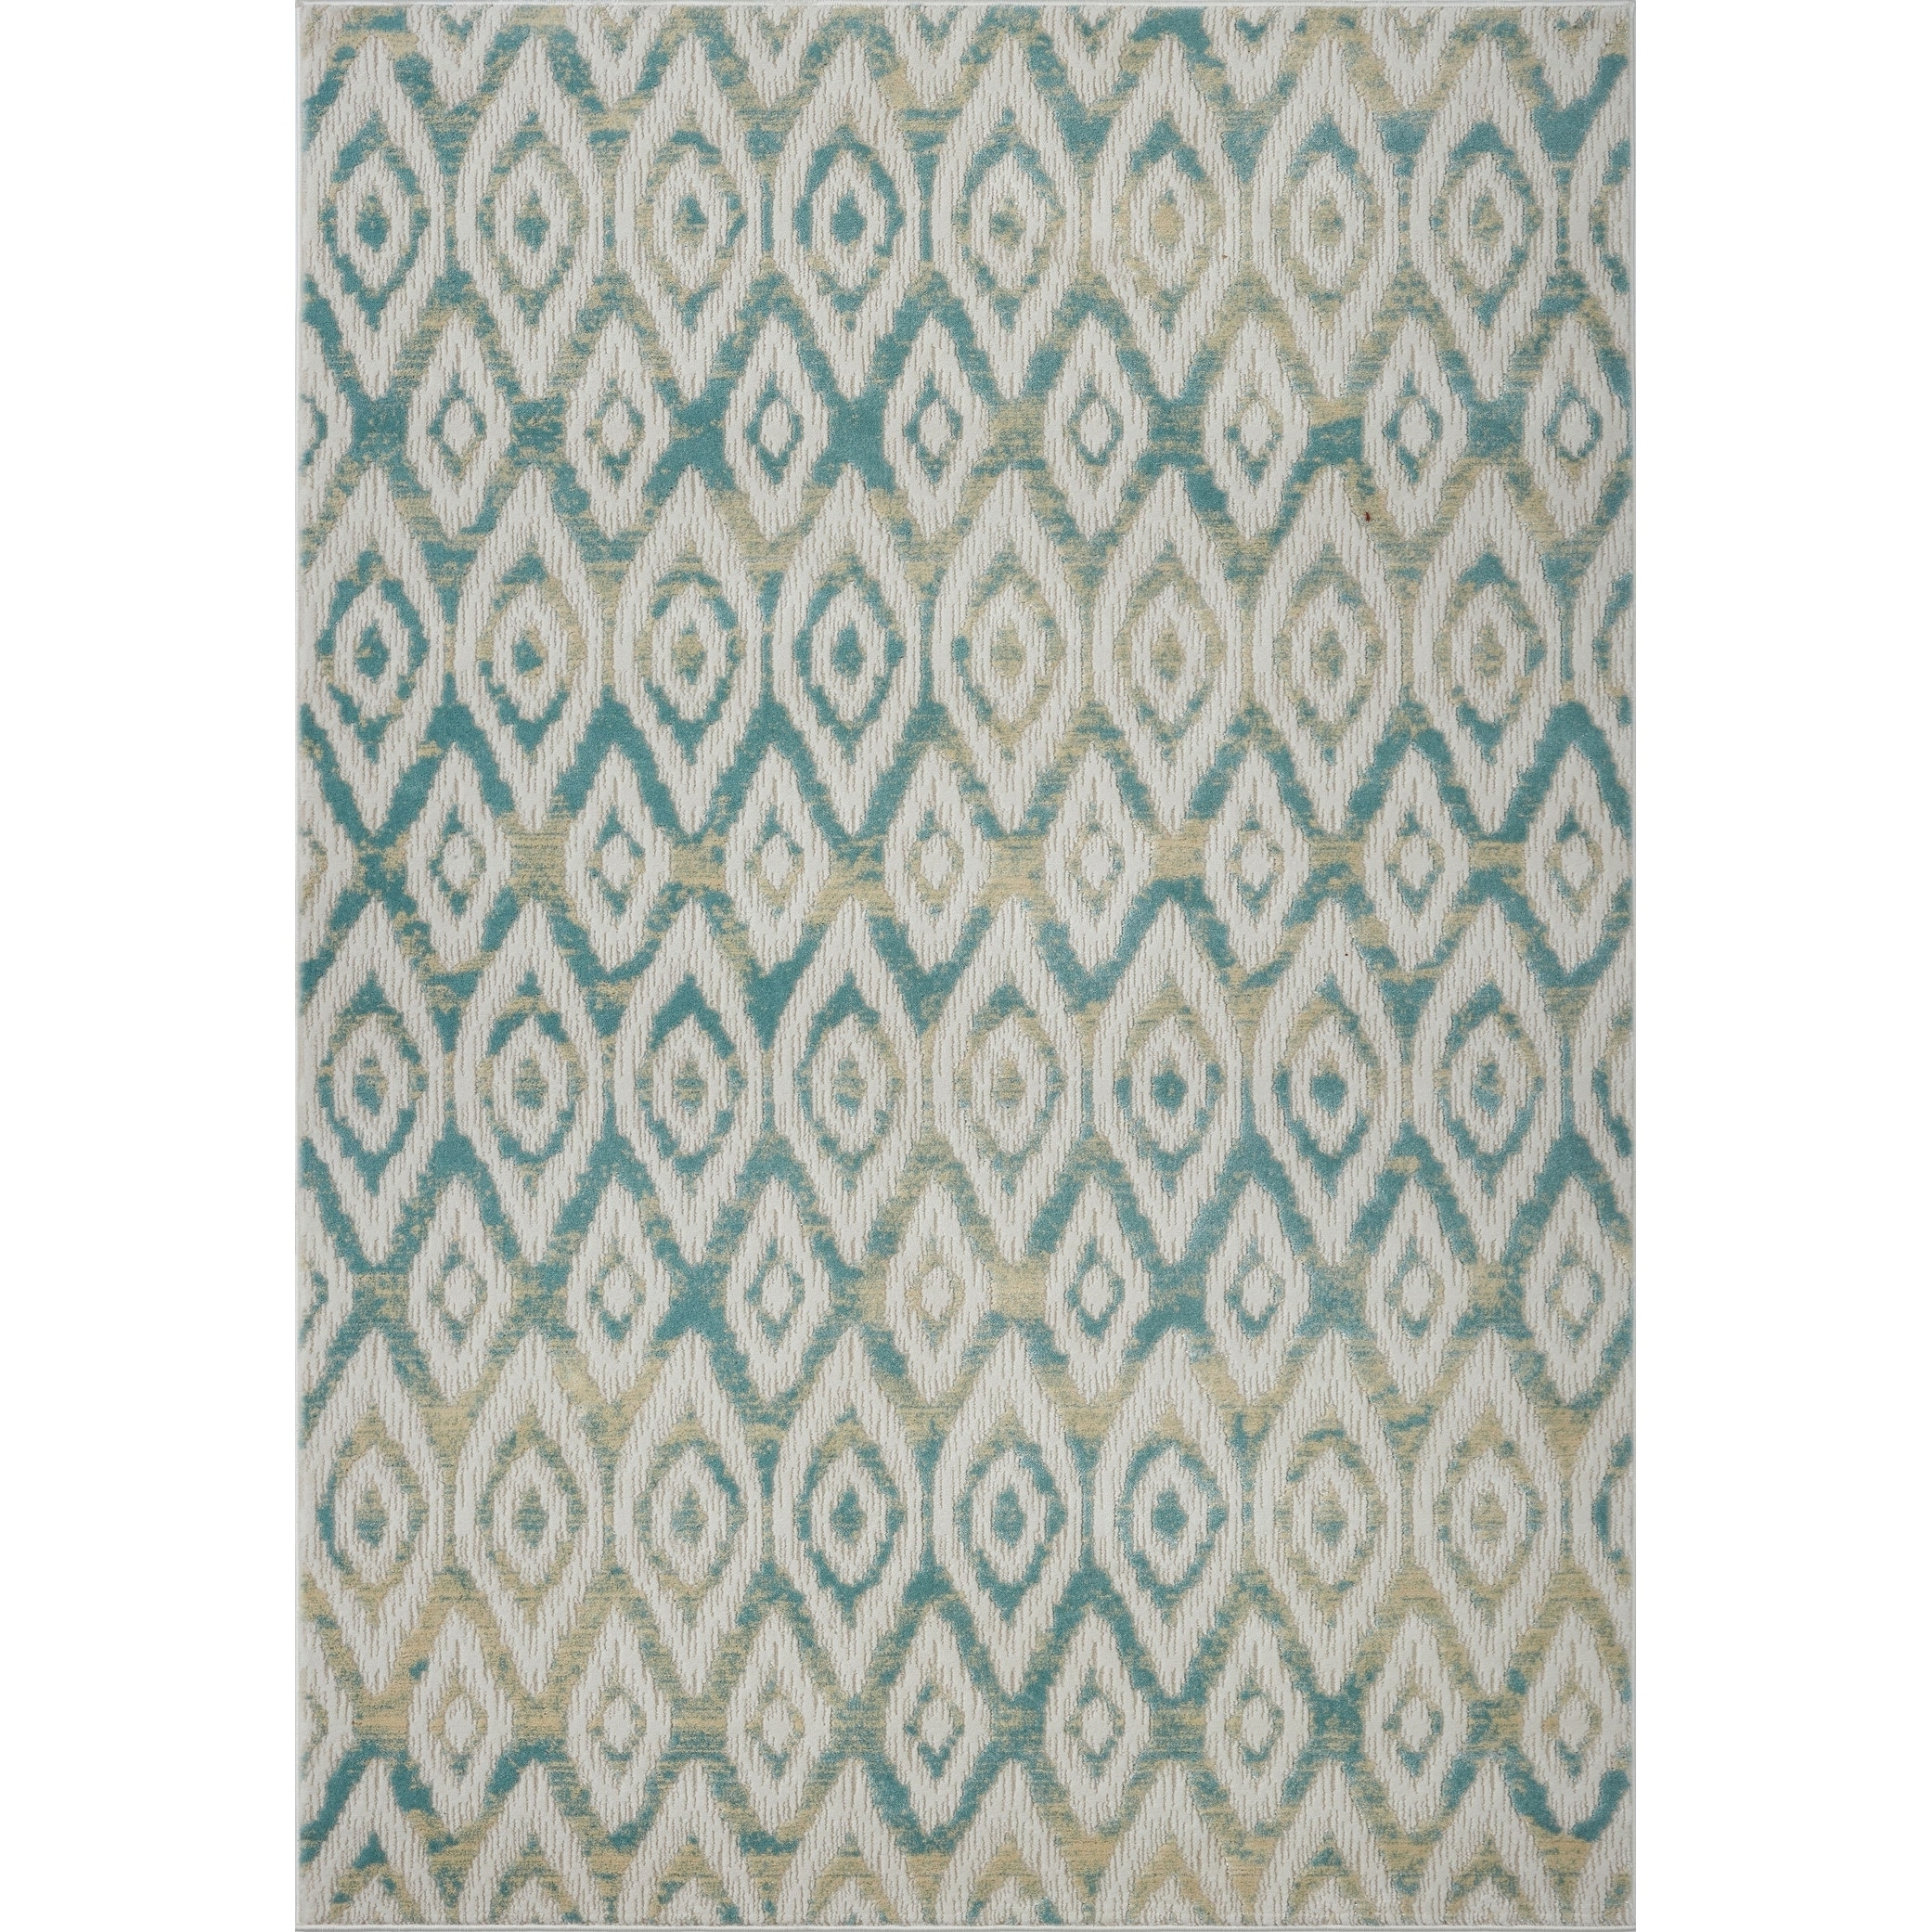 Ladole Rugs Bolivya Collection Geometric Modern Area Rugs In Blue